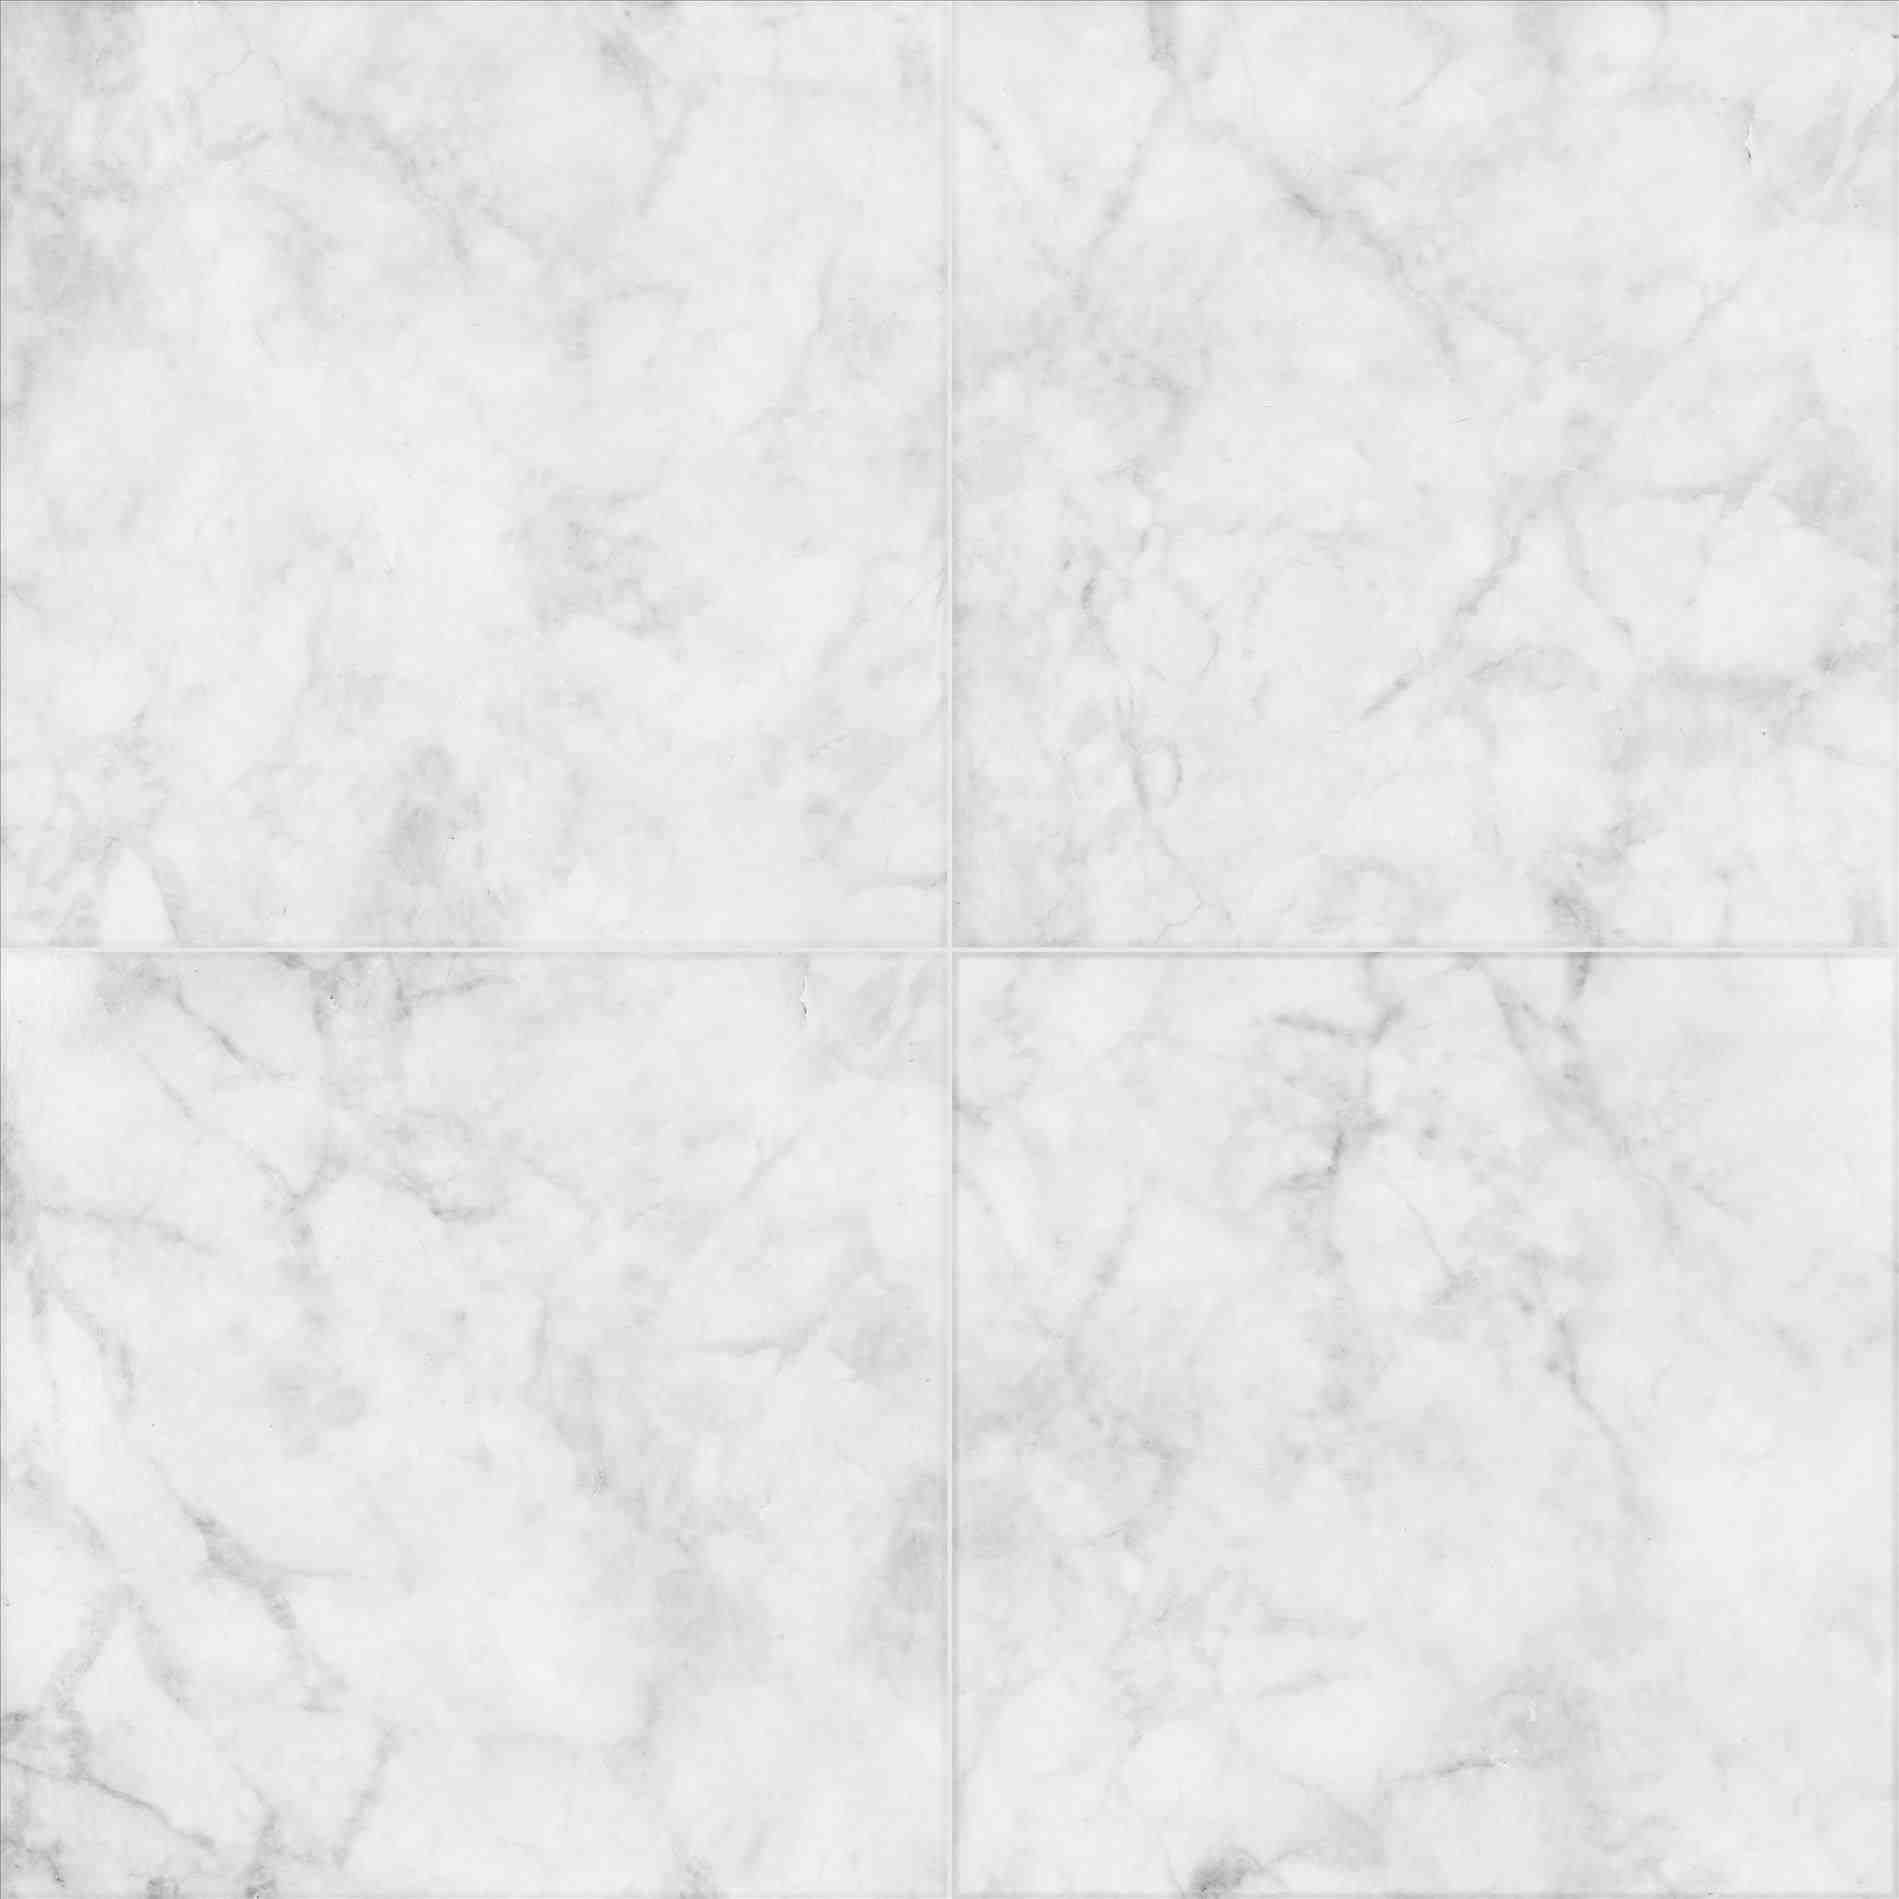 This Bathroom Floor Tiles Texture Seamless With Swirl Pattern